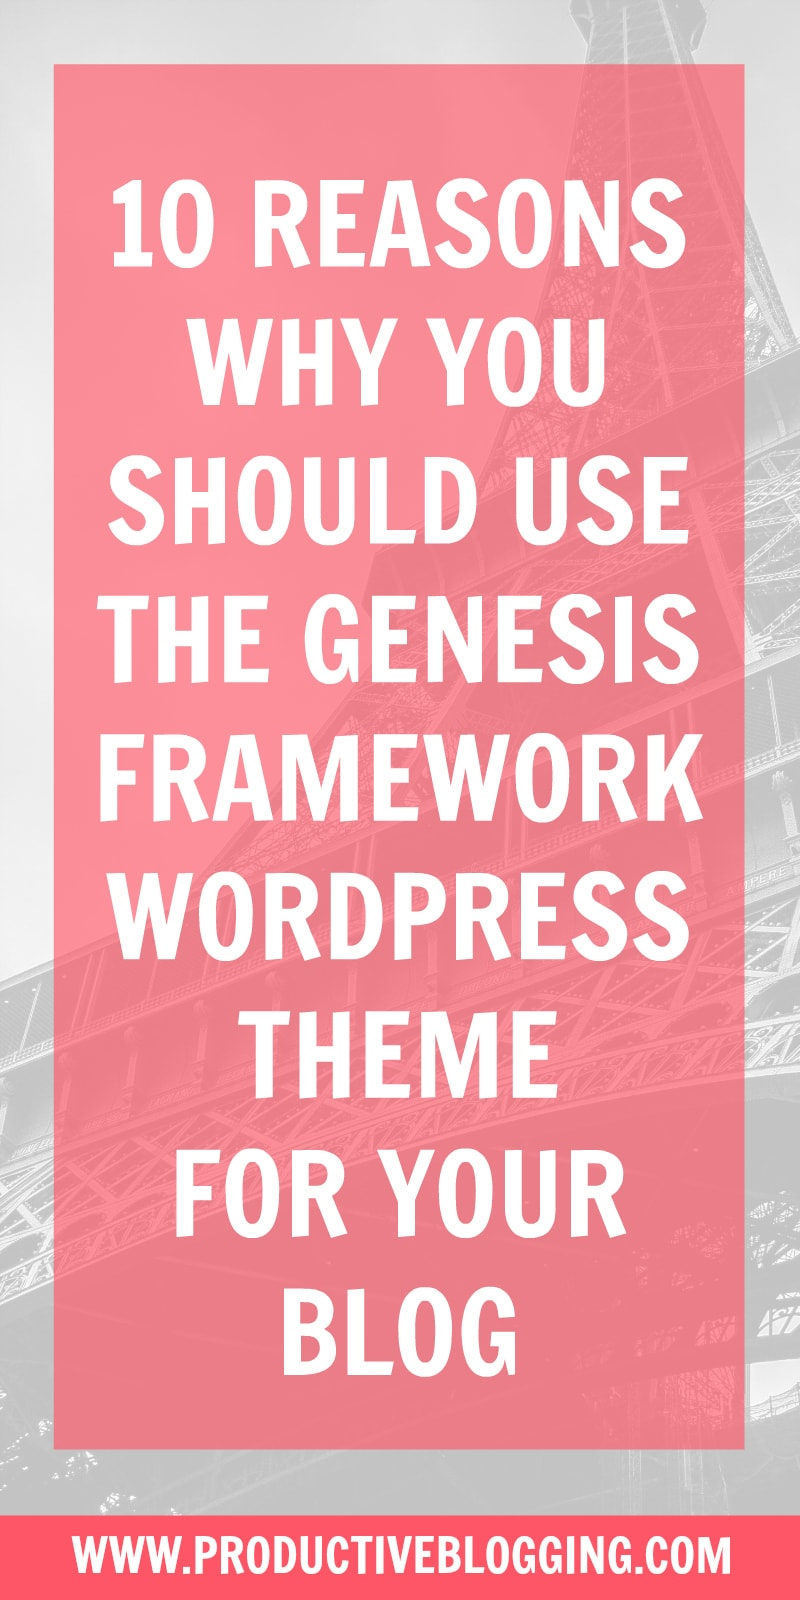 Choosing a WordPress theme is one of the most important blogging decisions you will make, so it's important to get it right. Here's 10 reasons why you should use the Genesis Framework WordPress theme for your blog. #genesis #genesistheme #genesisframework #genesiswordpress #wordpressblog #wordpresstheme #wordpressgenesis #parenttheme #genesisparenttheme #childtheme #restored316 #restored316childtheme #blogging #bloggingtips #wordpresstips genesistips #productiveblogging